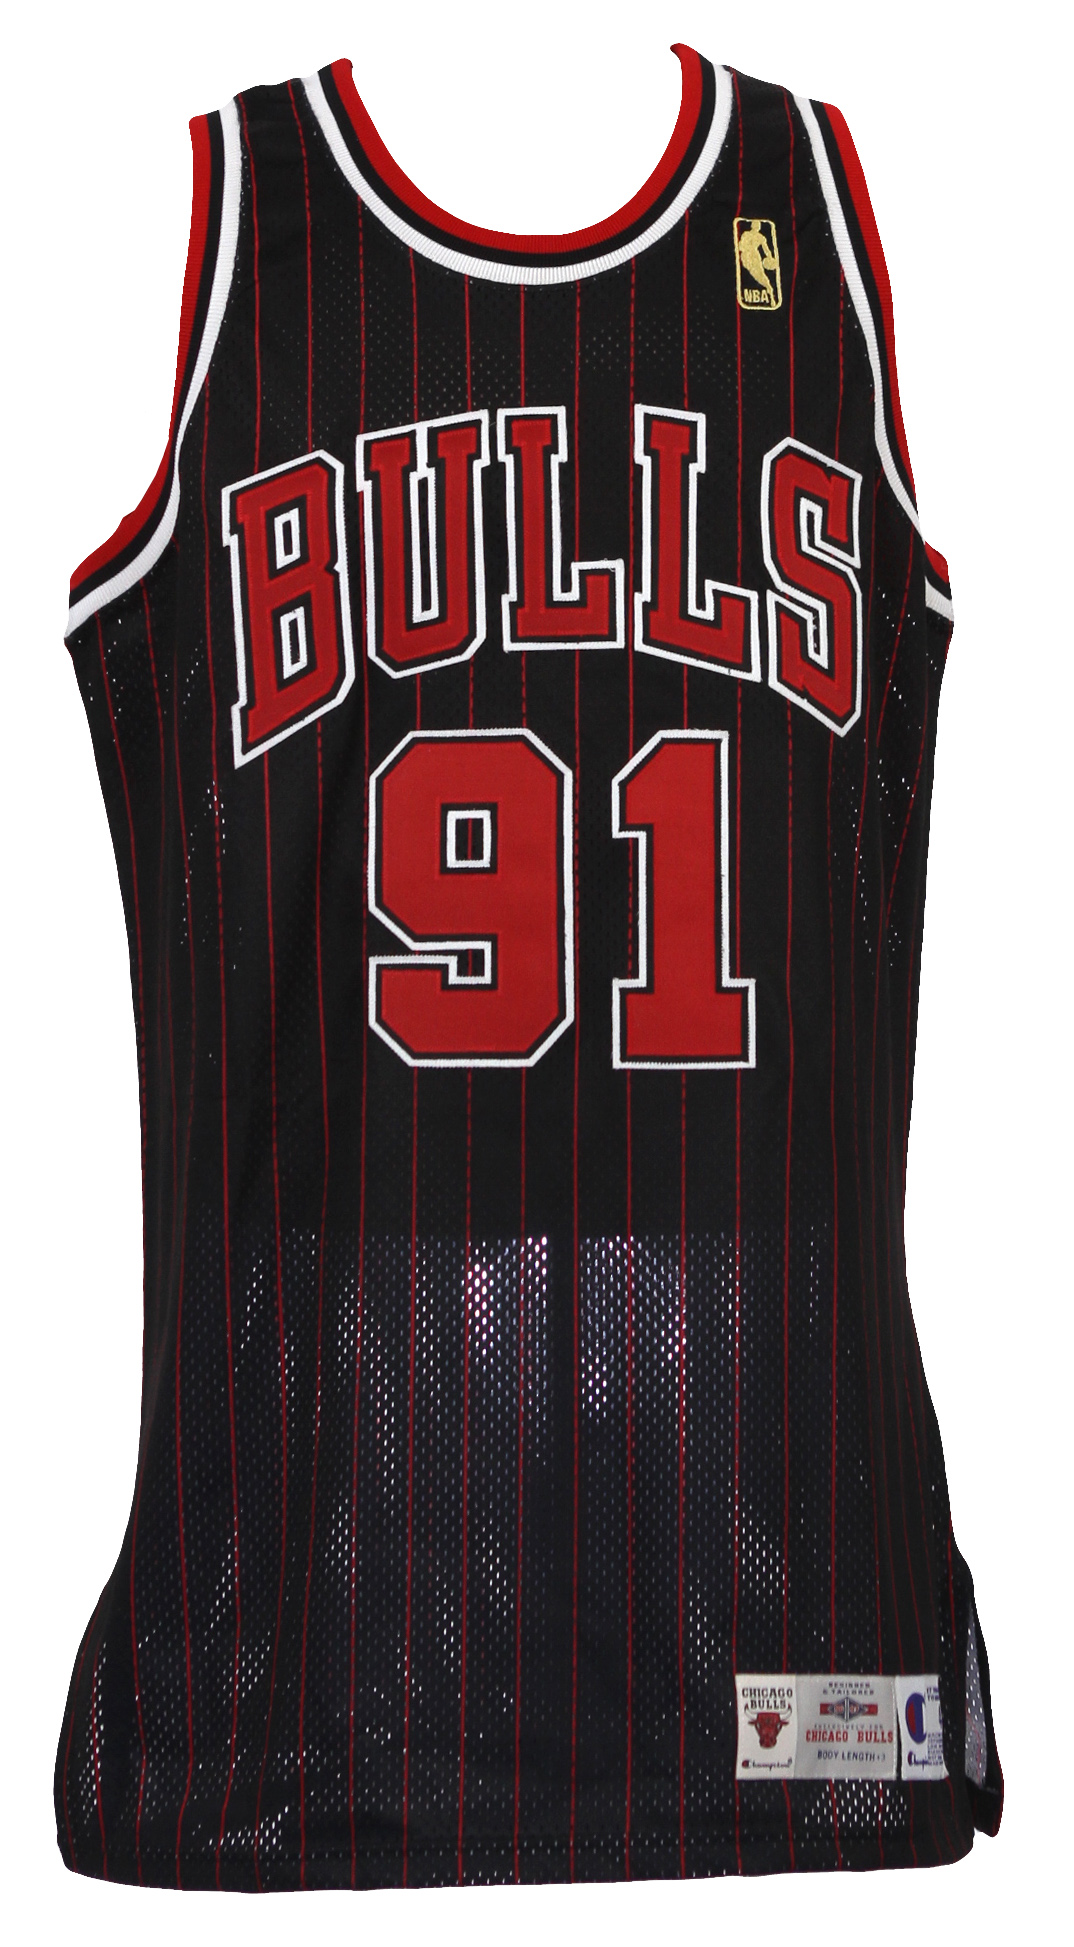 cheaper c7a44 f86d5 Lot Detail - 1996-97 Dennis Rodman Chicago Bulls Signed Pro ...